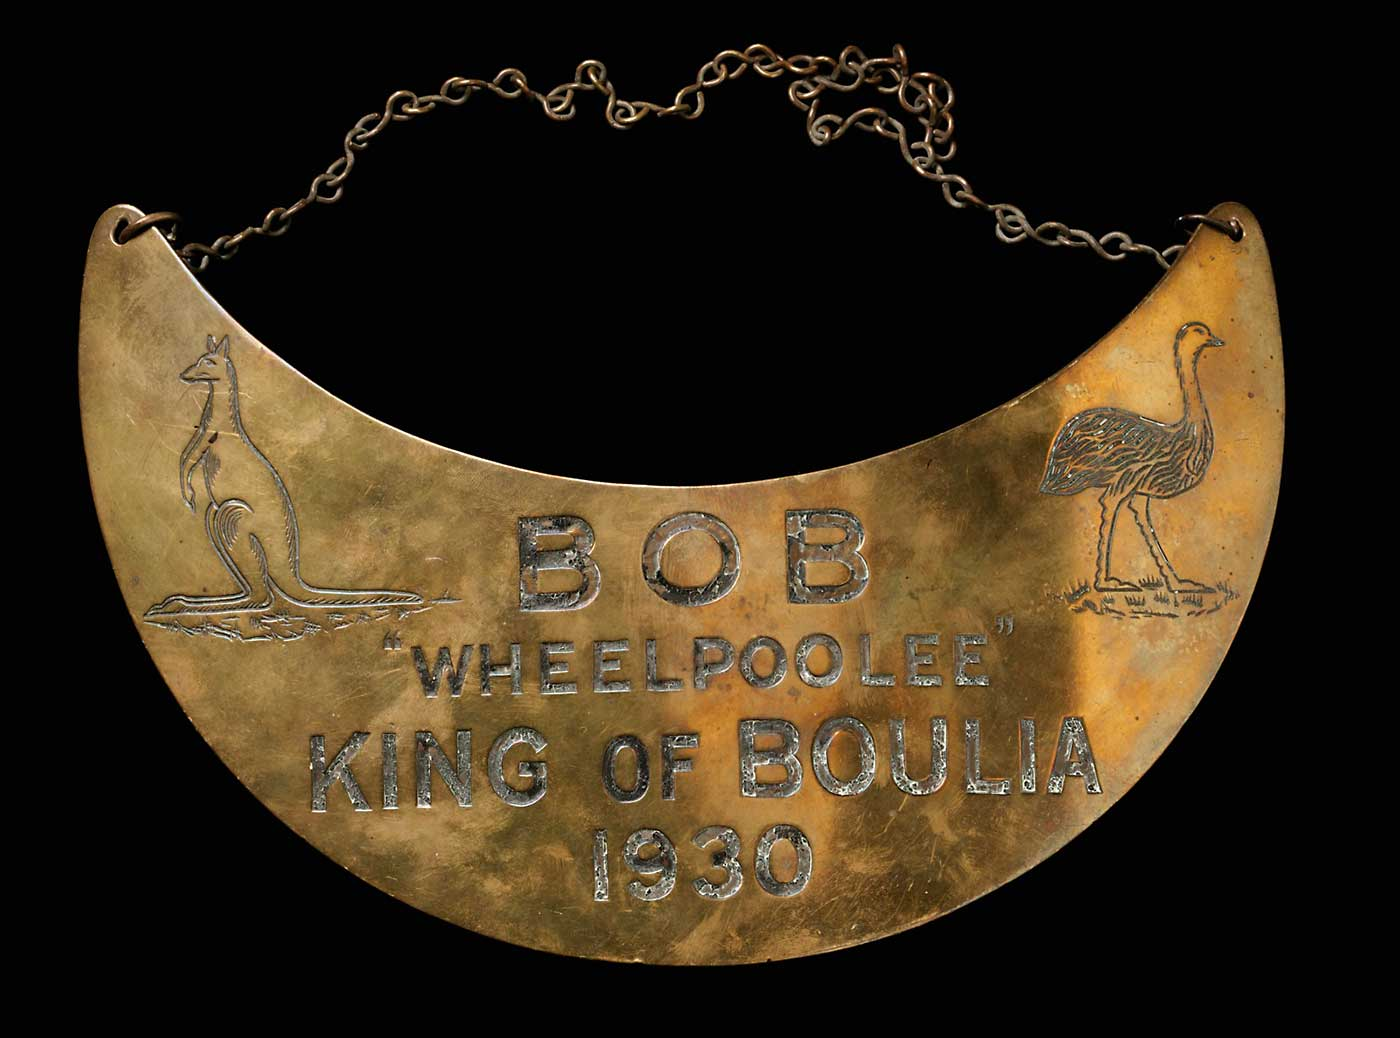 A crescentic, slightly convex brass breastplate with chain, engraved 'BOB / 'WHEELPOOLEE' / KING OF BOULIA / 1930' with a kangaroo on the left and an emu on the right. The chain is looped through two holes at the top of the breastplate.